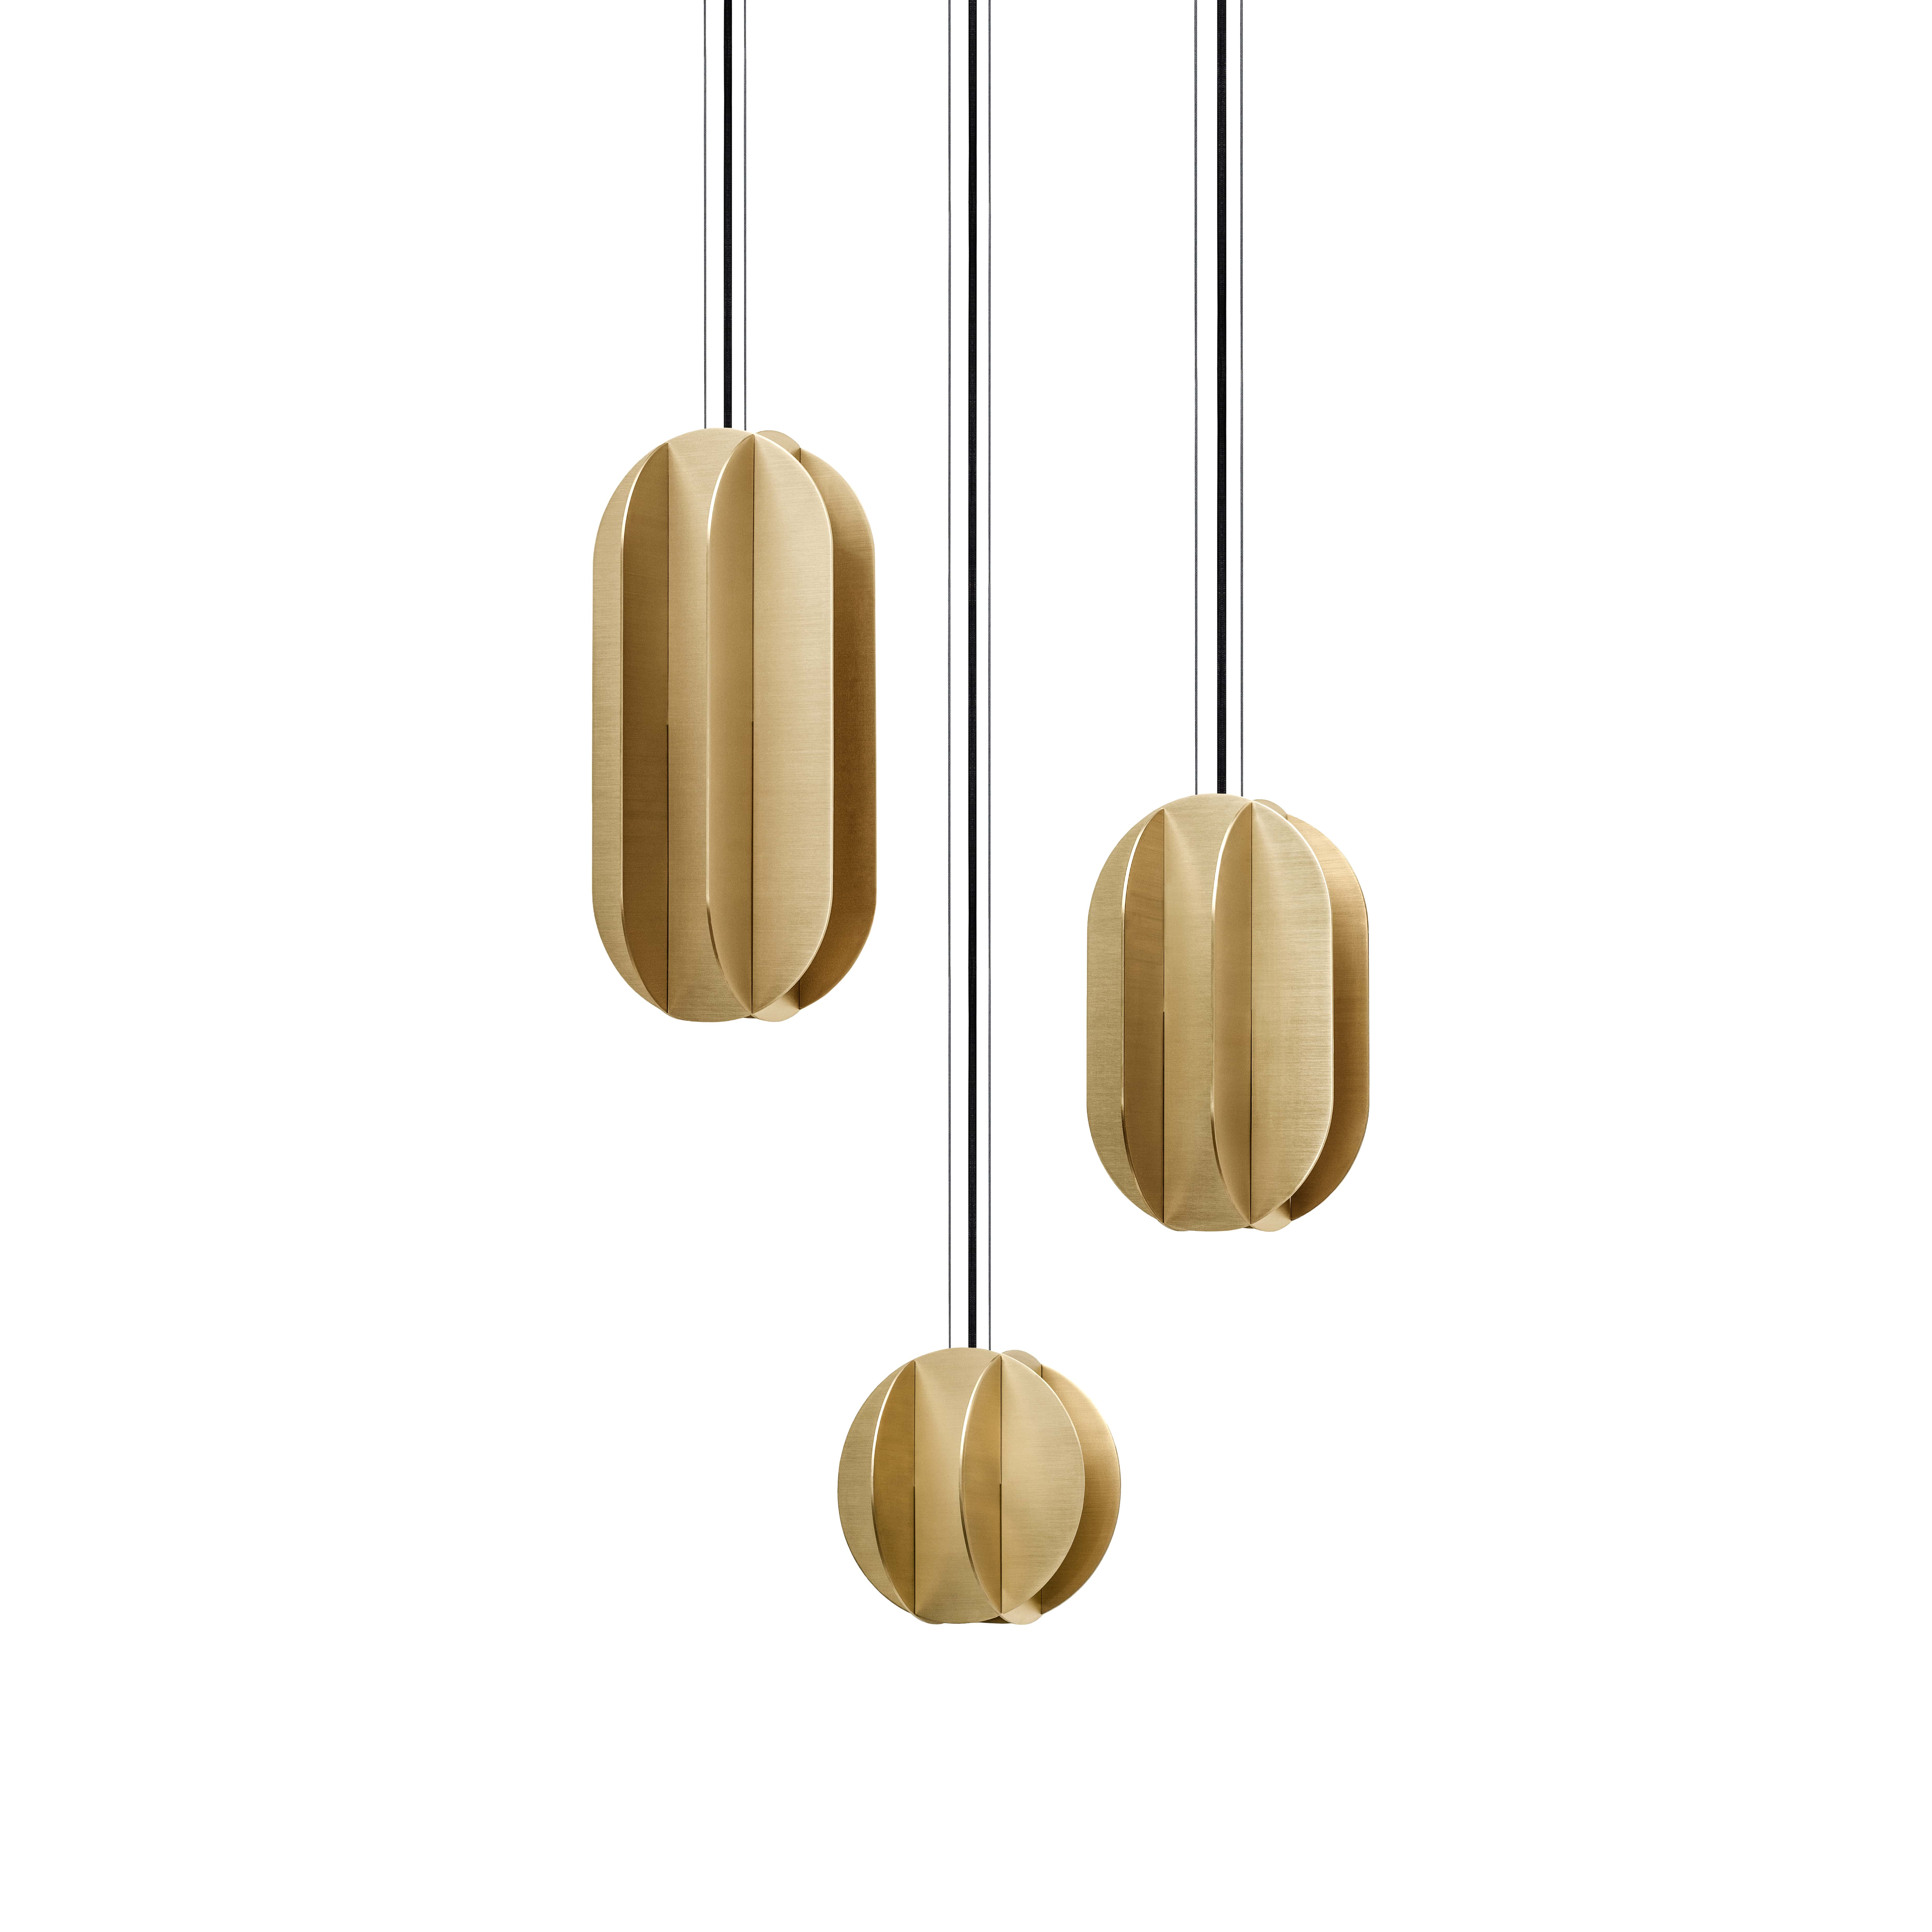 EL Pendant Lamp CS1 Brass - <p>With a nod to geometric works of the great Suprematism artists El Lissitzky and Kazimir Malevich, this structural series of pendant lightings combines modernist and contemporary looks.<br />The sleek and stylish design scheme of EL Lamps makes them perfect to illuminate the objects in homes and public spaces, highlighting with an accent light.<br />EL Lamps available in a range of sizes will always look like a small art object in your interior.</p> <p>SPECIFICATIONS<br /> Electrification: EU version: LED 10W   G9   220 -240V   50 Hz<br /> USA version: LED 10W   G9   110V   60 Hz</p>    Matter of Stuff